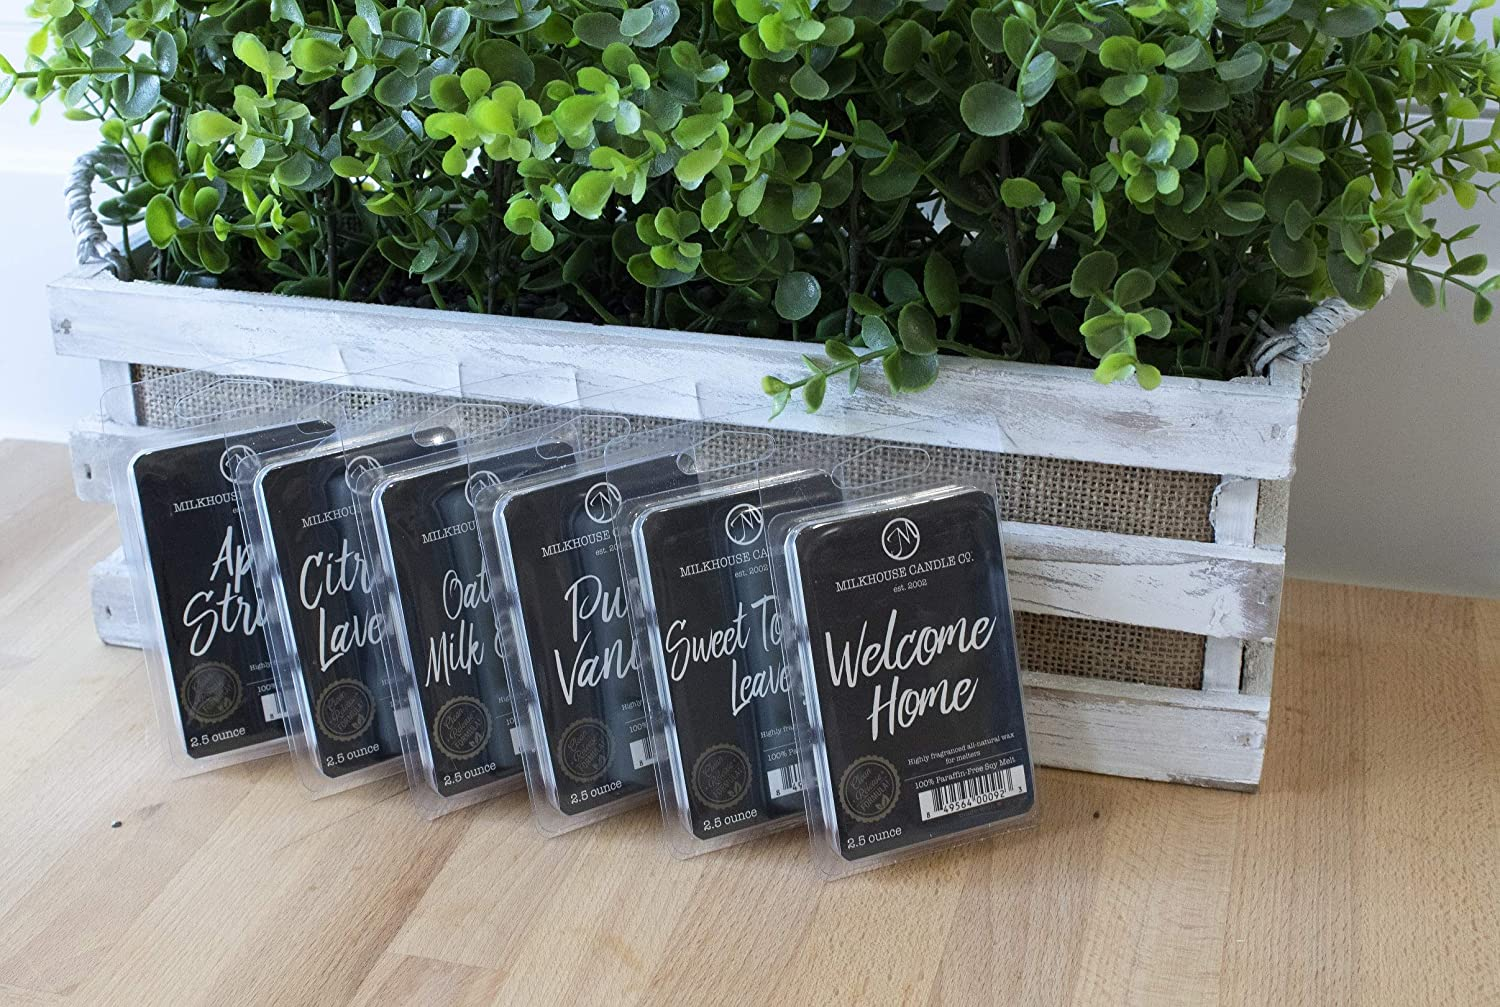 Milkhouse Candles Variety Fragrance Melts - Apple Strudel, Citrus & Lavender, Oatmeal, Milk & Honey, Pure Vanilla, Sweet Tobacco Leaves, Welcome Home, 6 Pack: Home & Kitchen